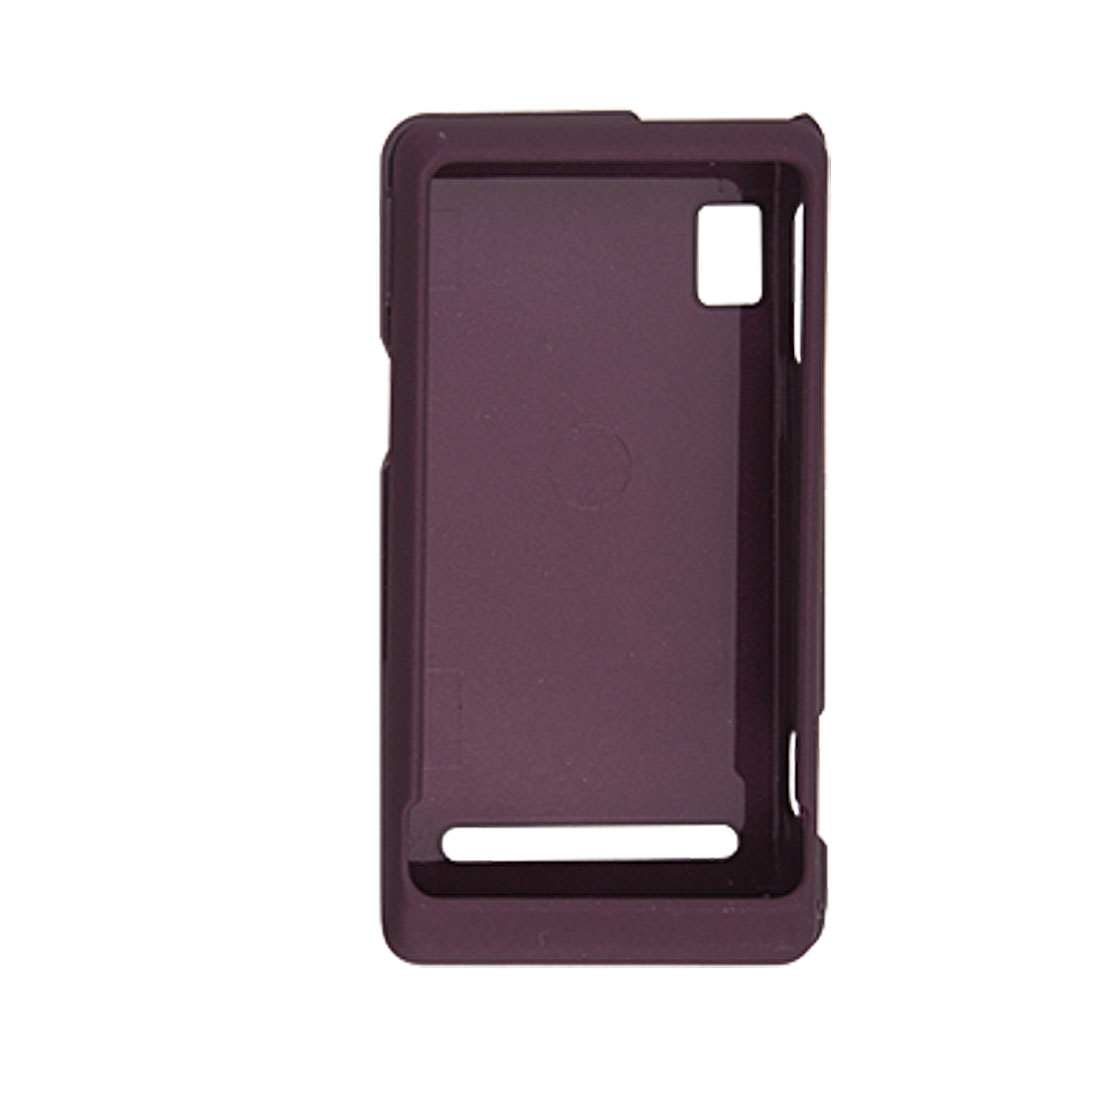 Rubberied Plastic Dark Purple Case Cover for Motorola A955